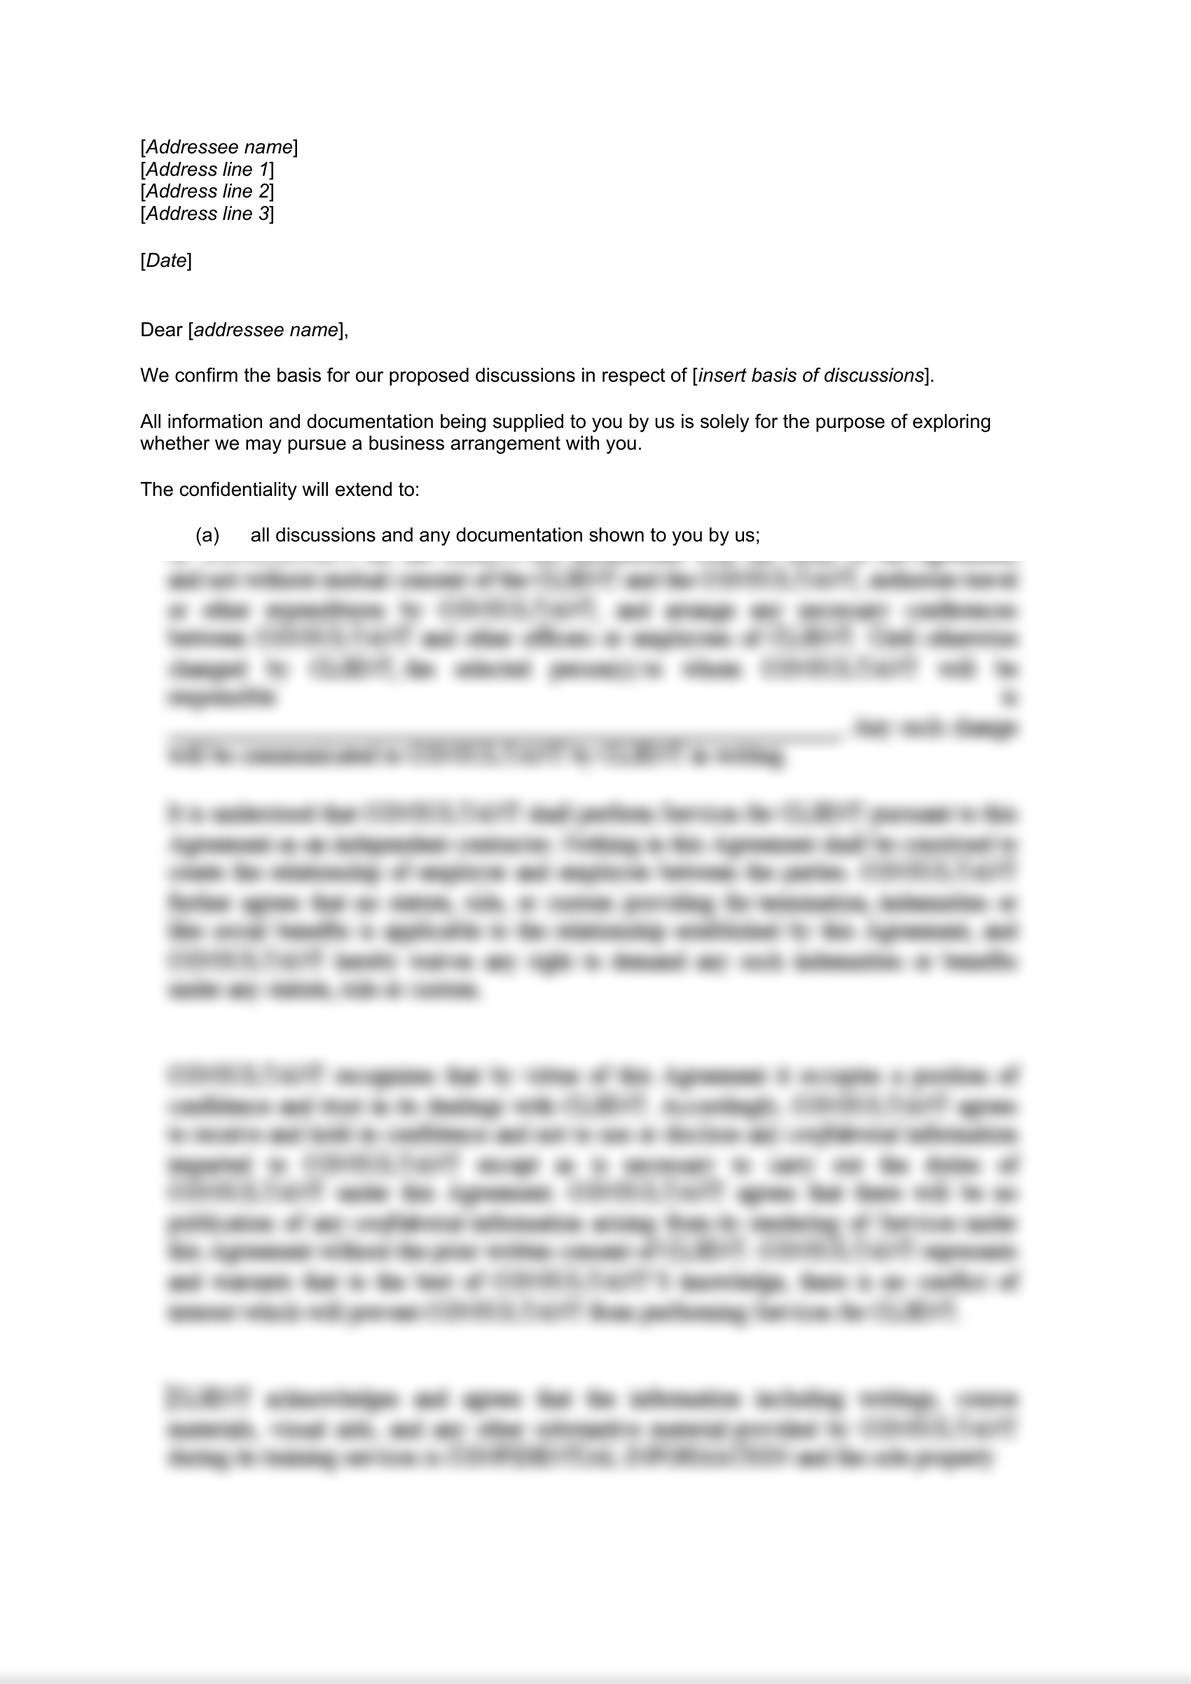 Confidentiality Letter - Short Form-0